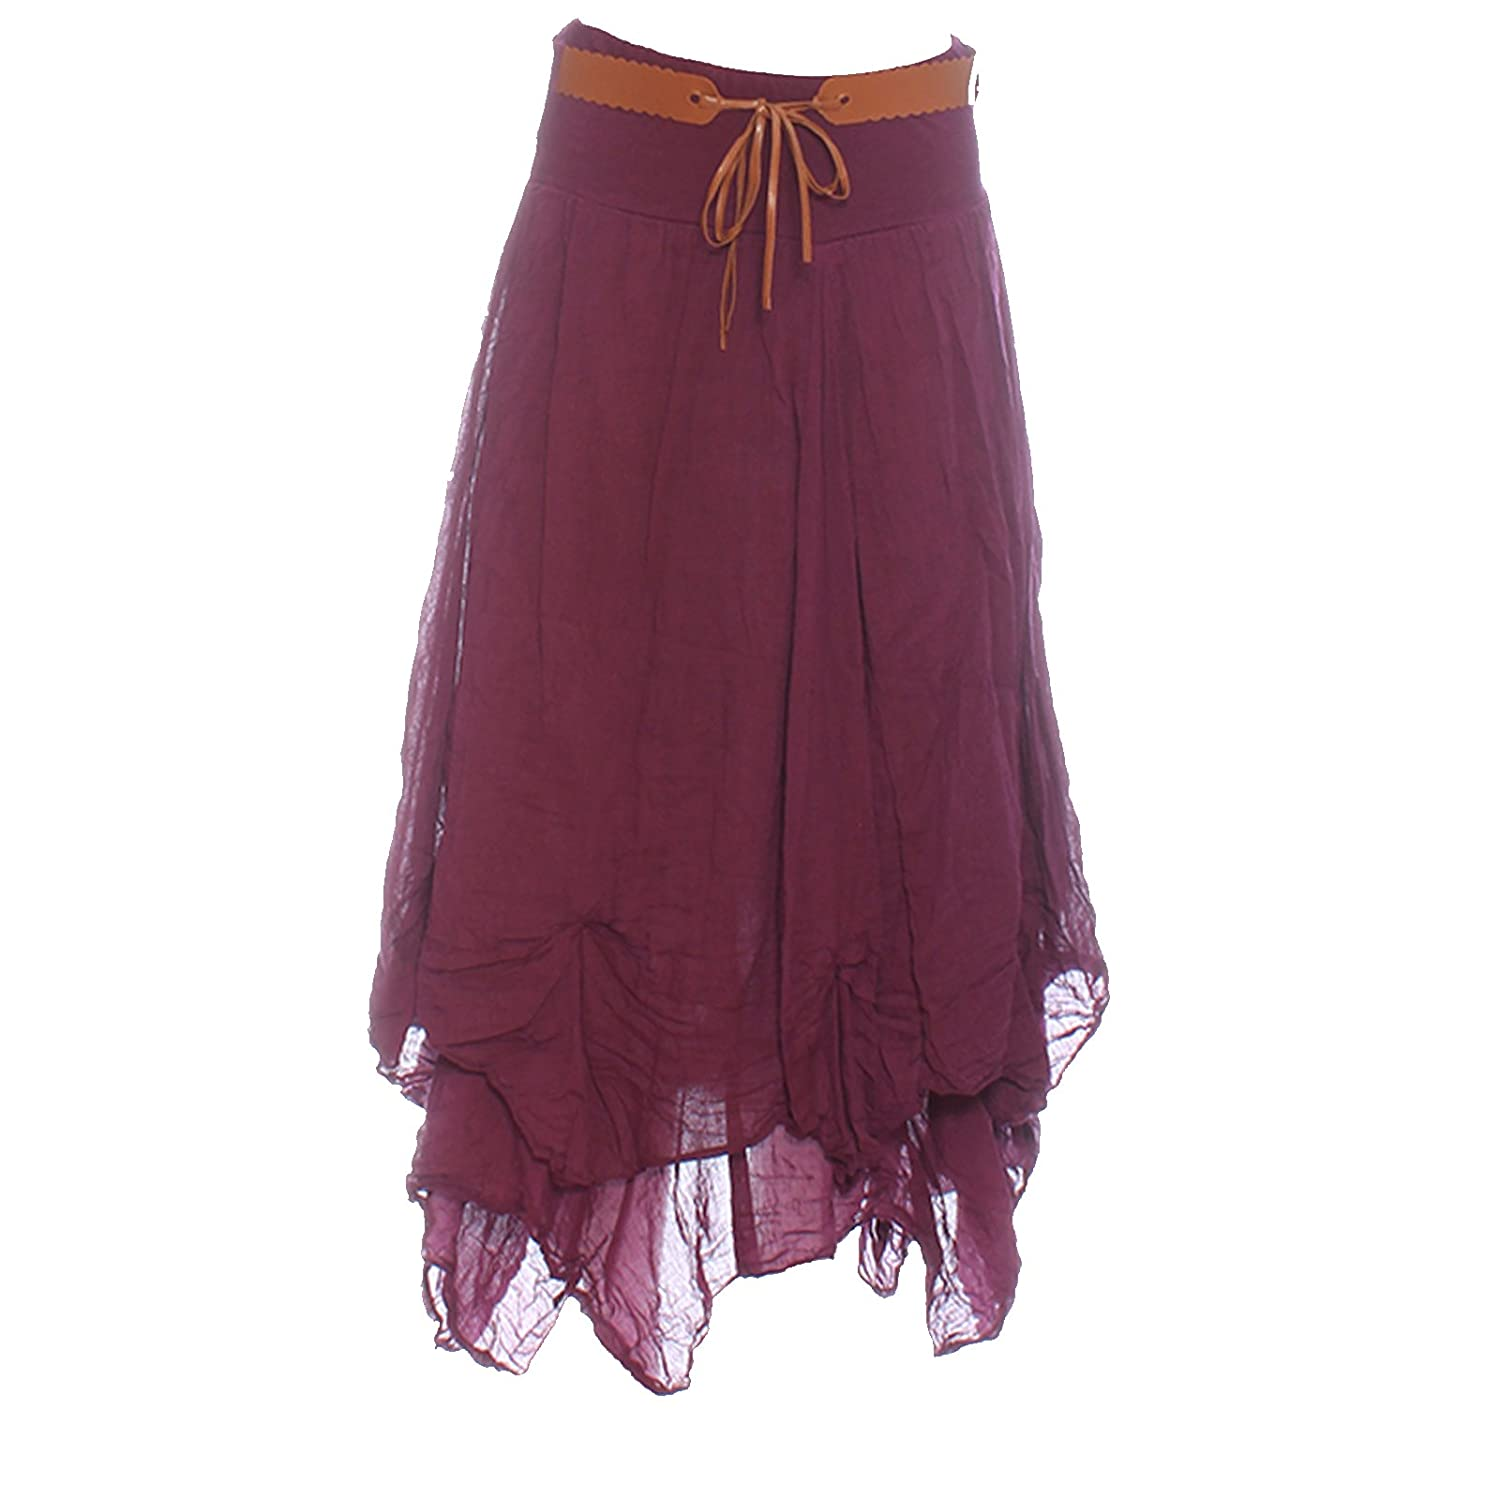 Candy Clothing Made Ladies Hi Waisted Cotton Skirt Festival Belted Boho Gypsy Tiered Asymmetric Hitched Hem Long Maxi Skirt Festiva